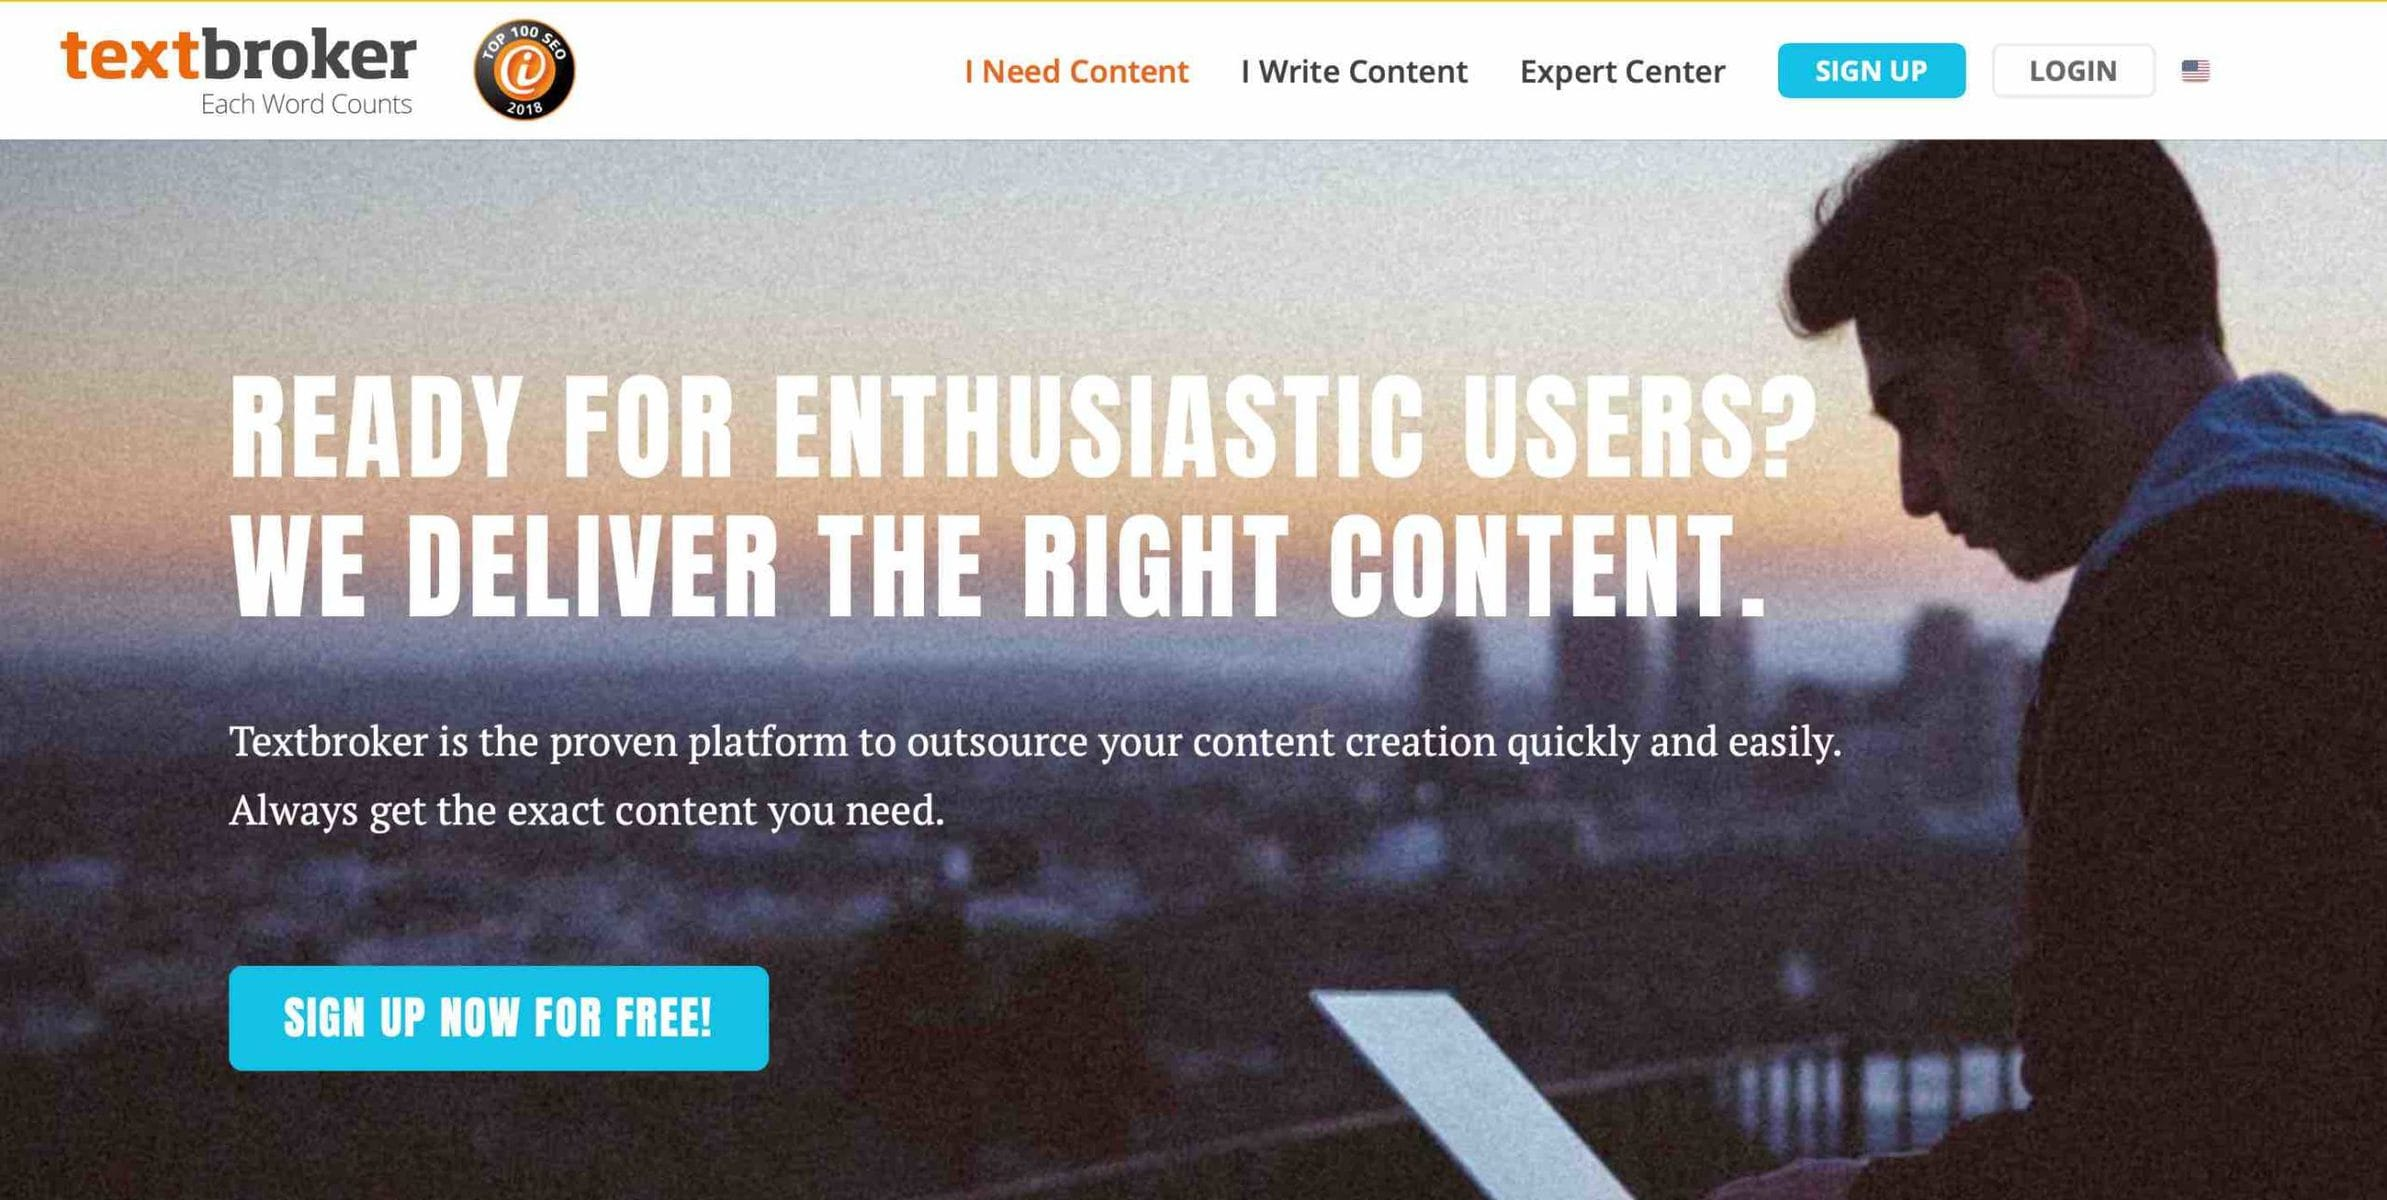 outsource your content creation quickly and easily